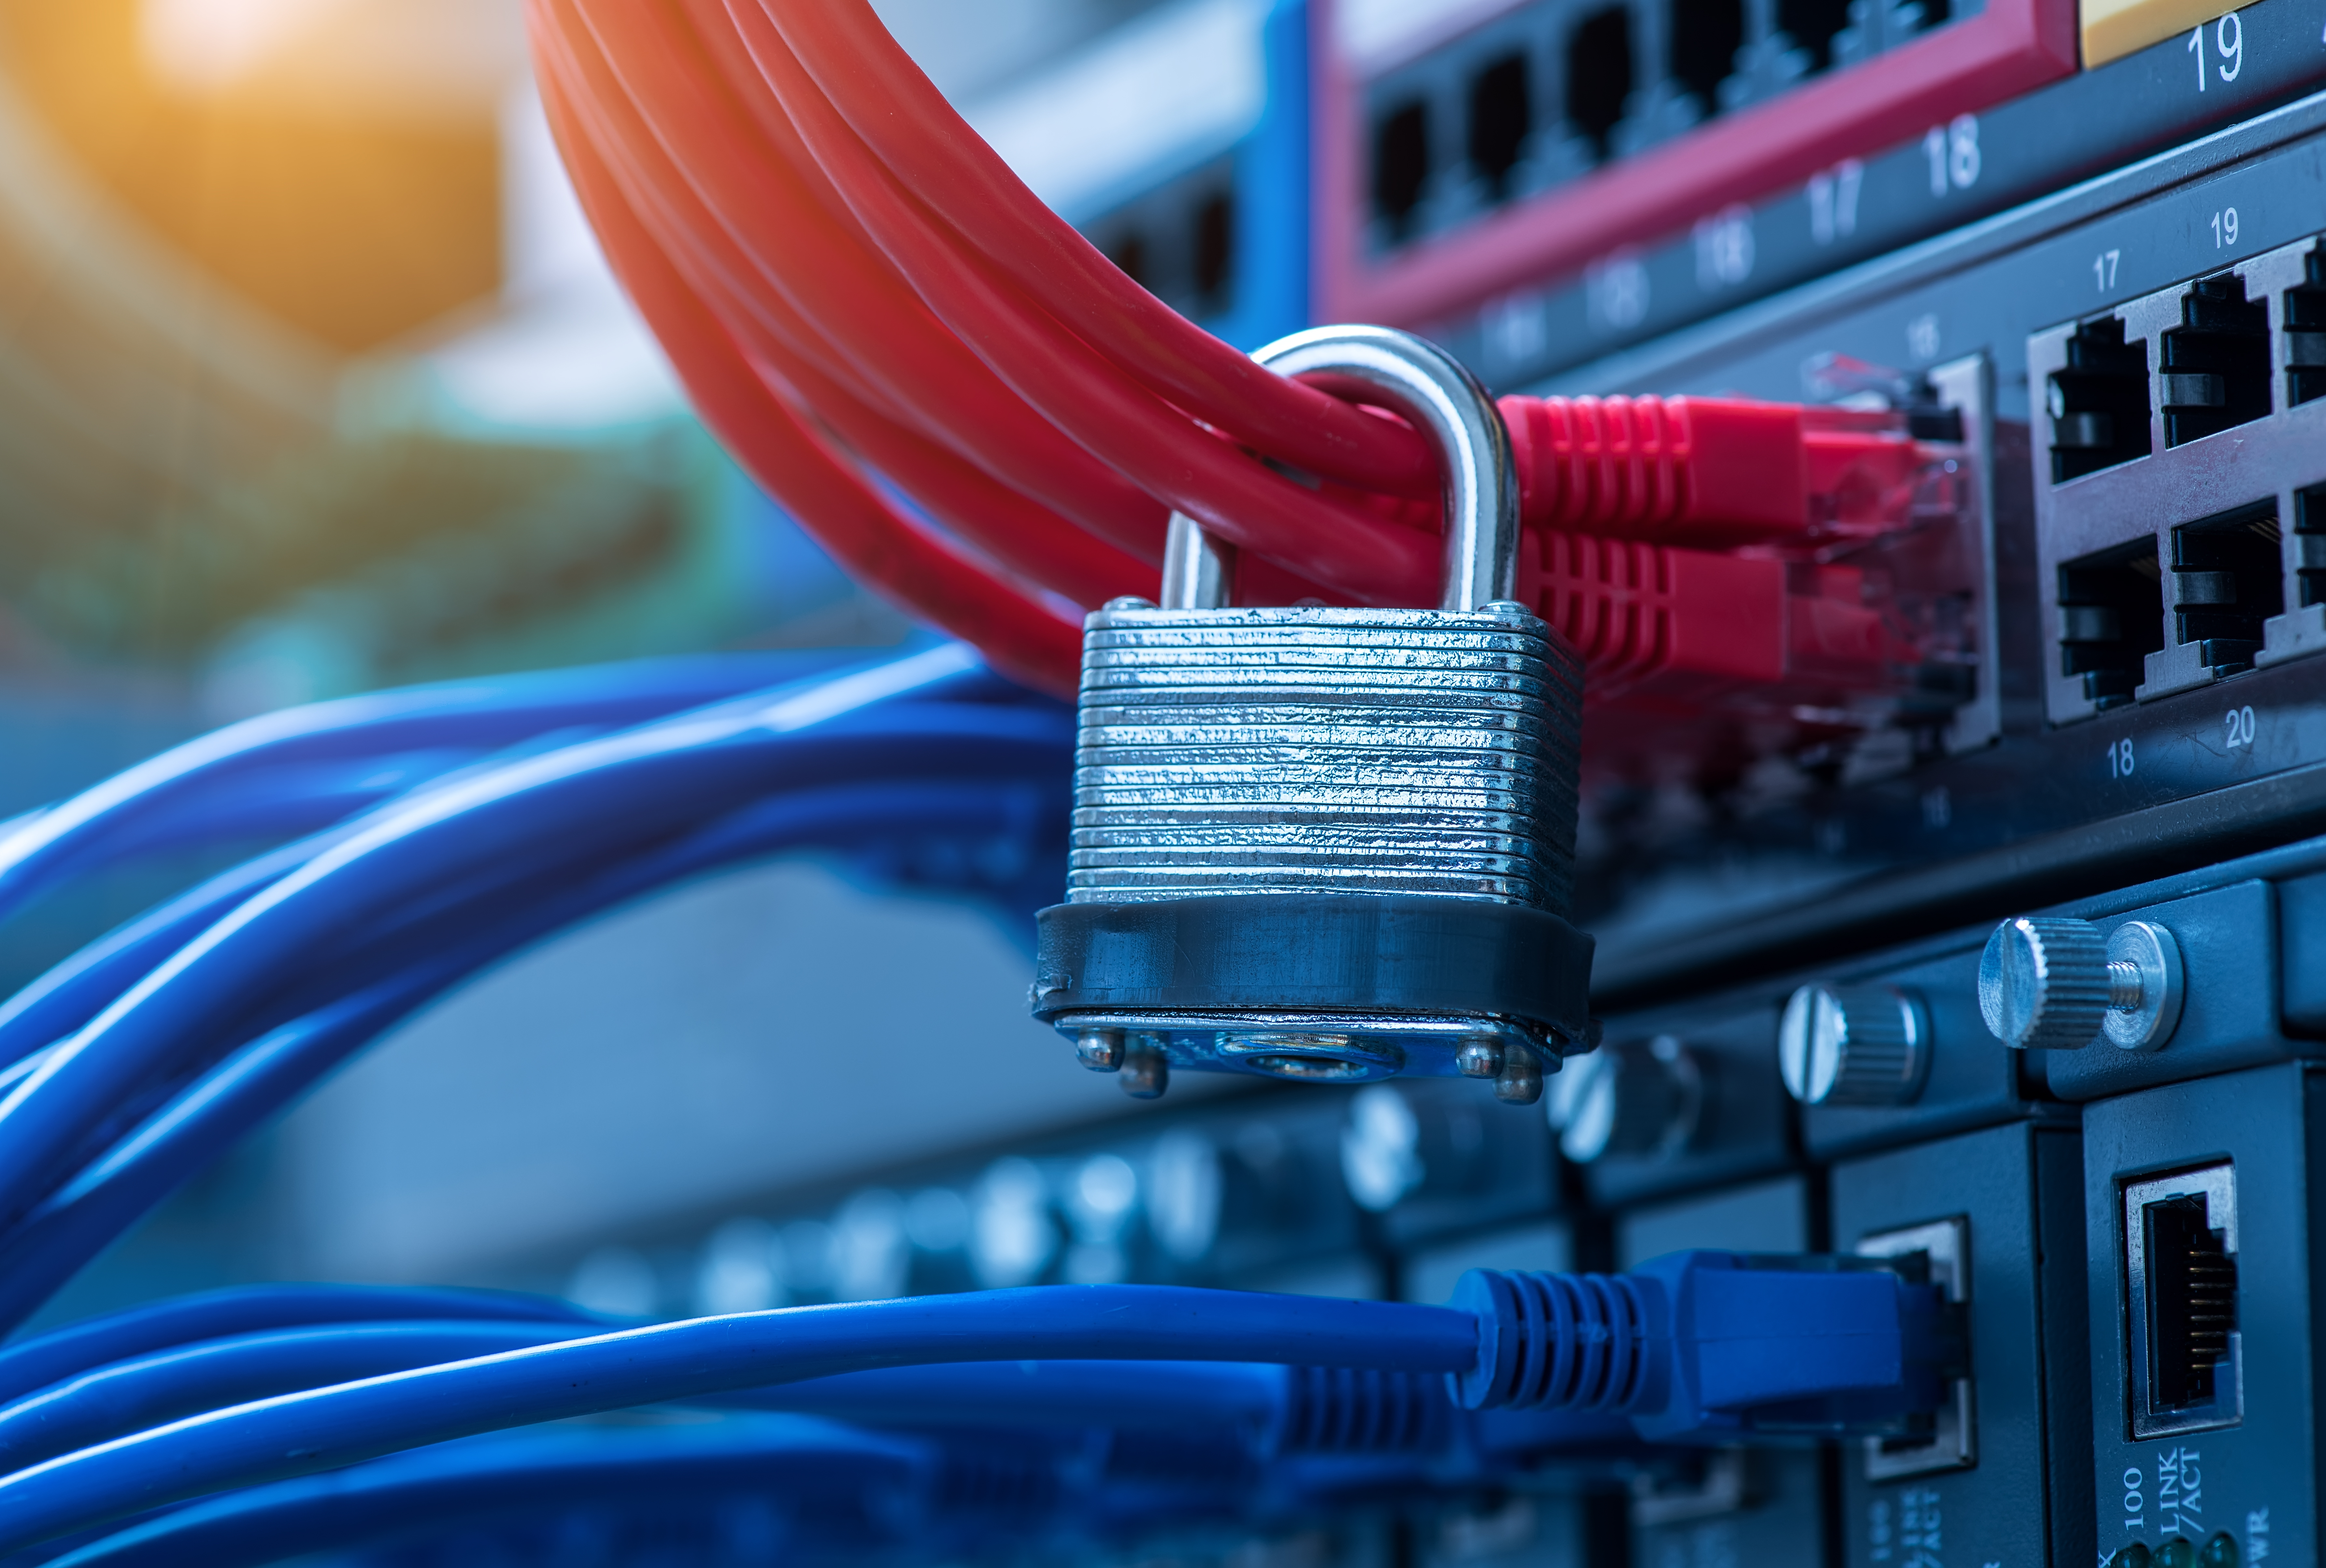 Lock for Network Cables - Network Security with Access Governance